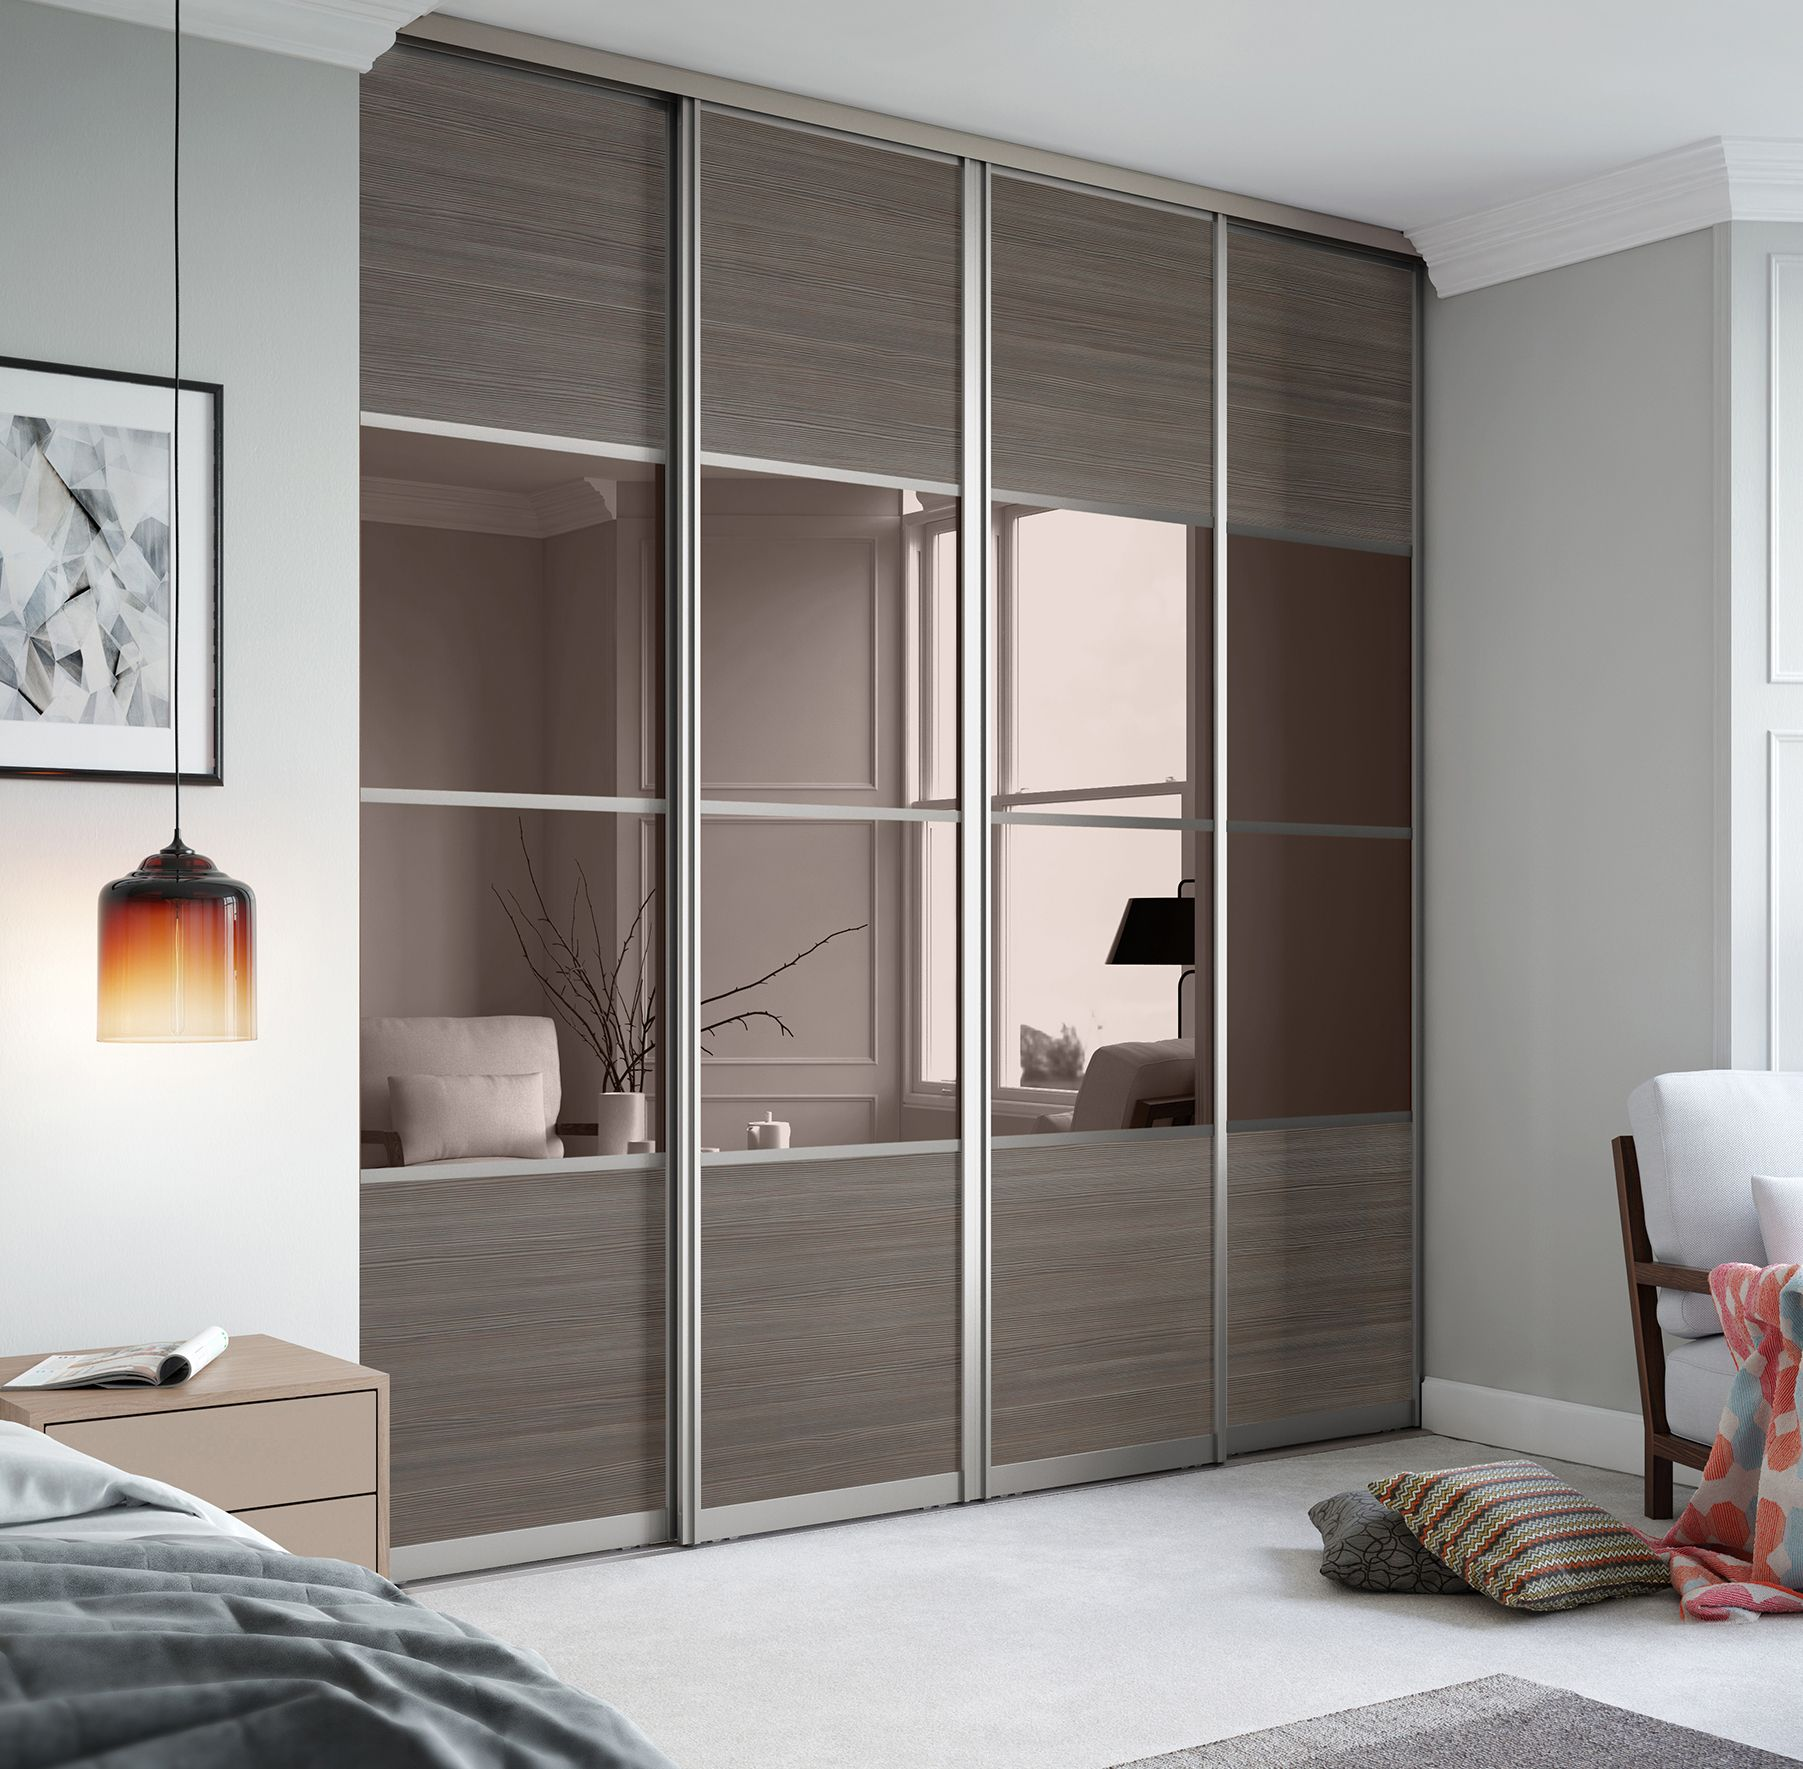 Signature 4 panel sliding wardrobe doors in Wild Wood and Bronze Mirror with Nickel frame